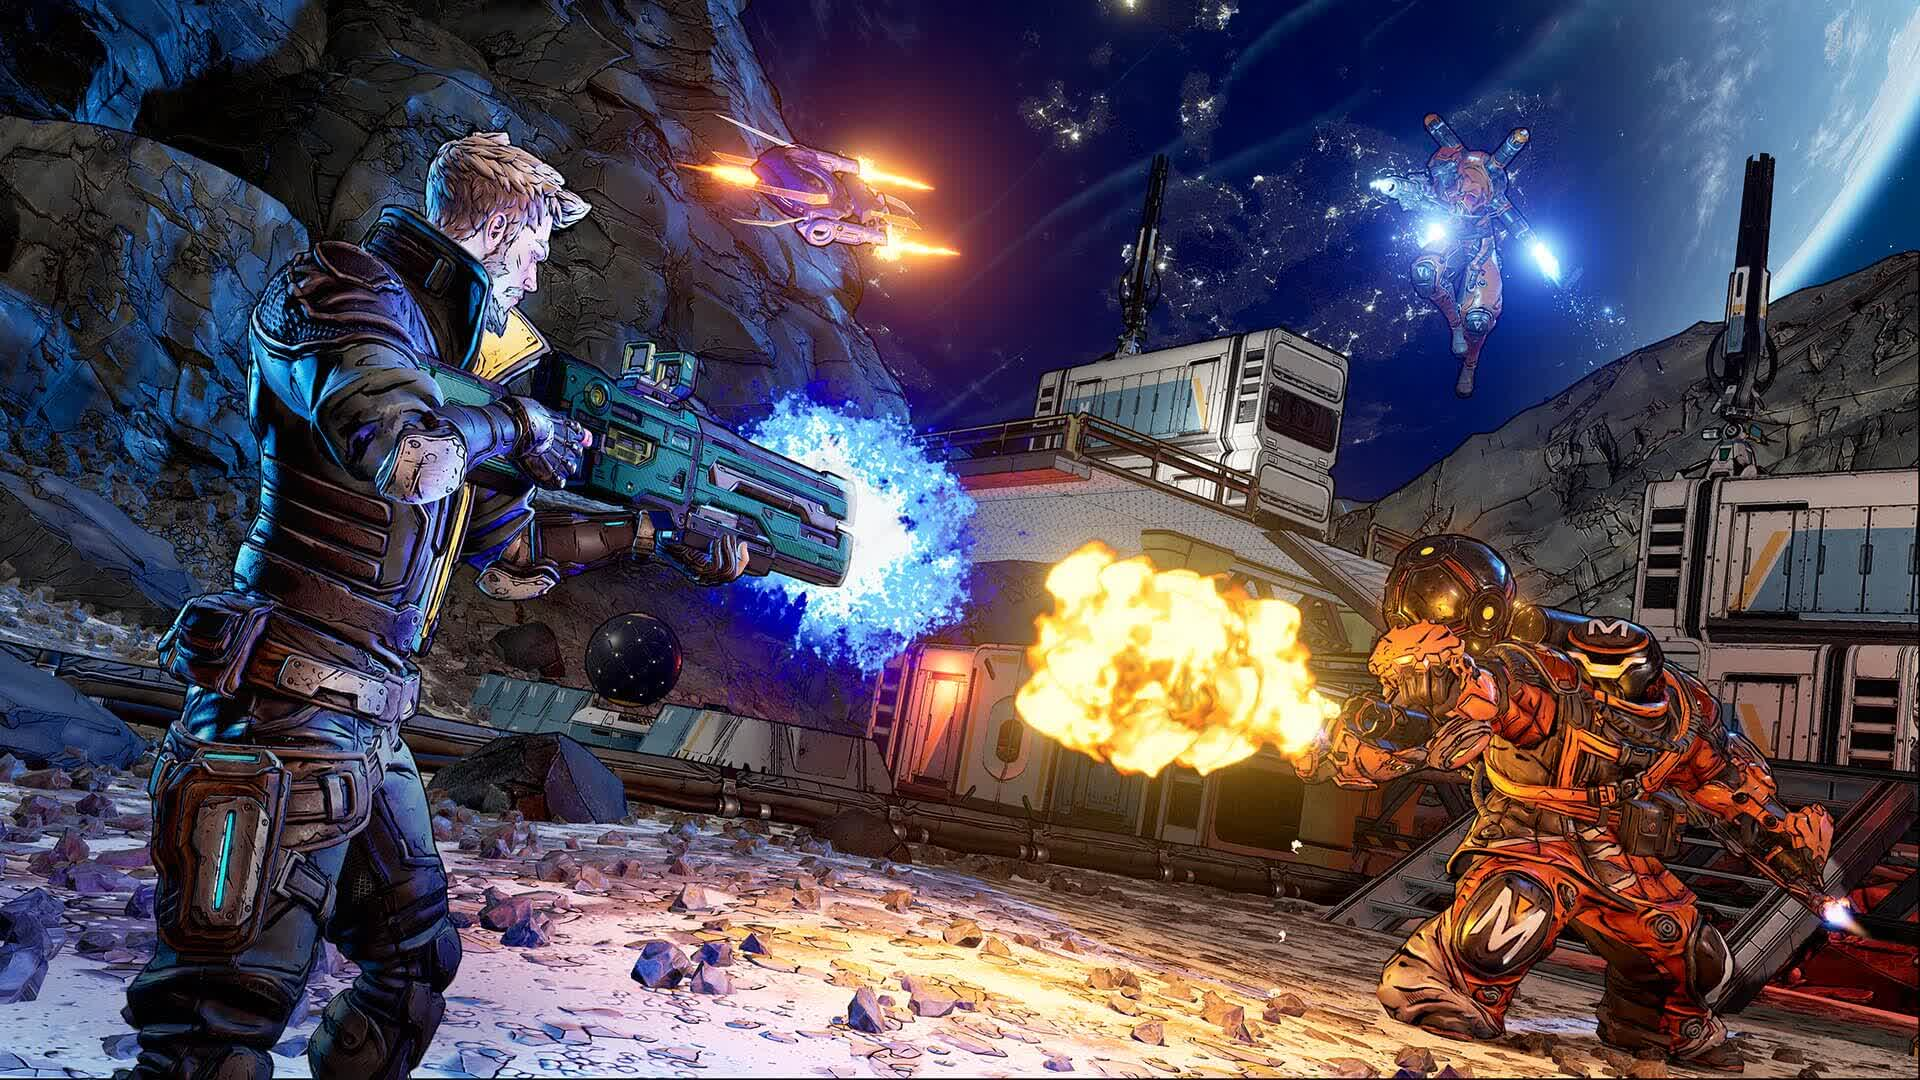 Borderlands 3 is coming to next-gen gaming consoles